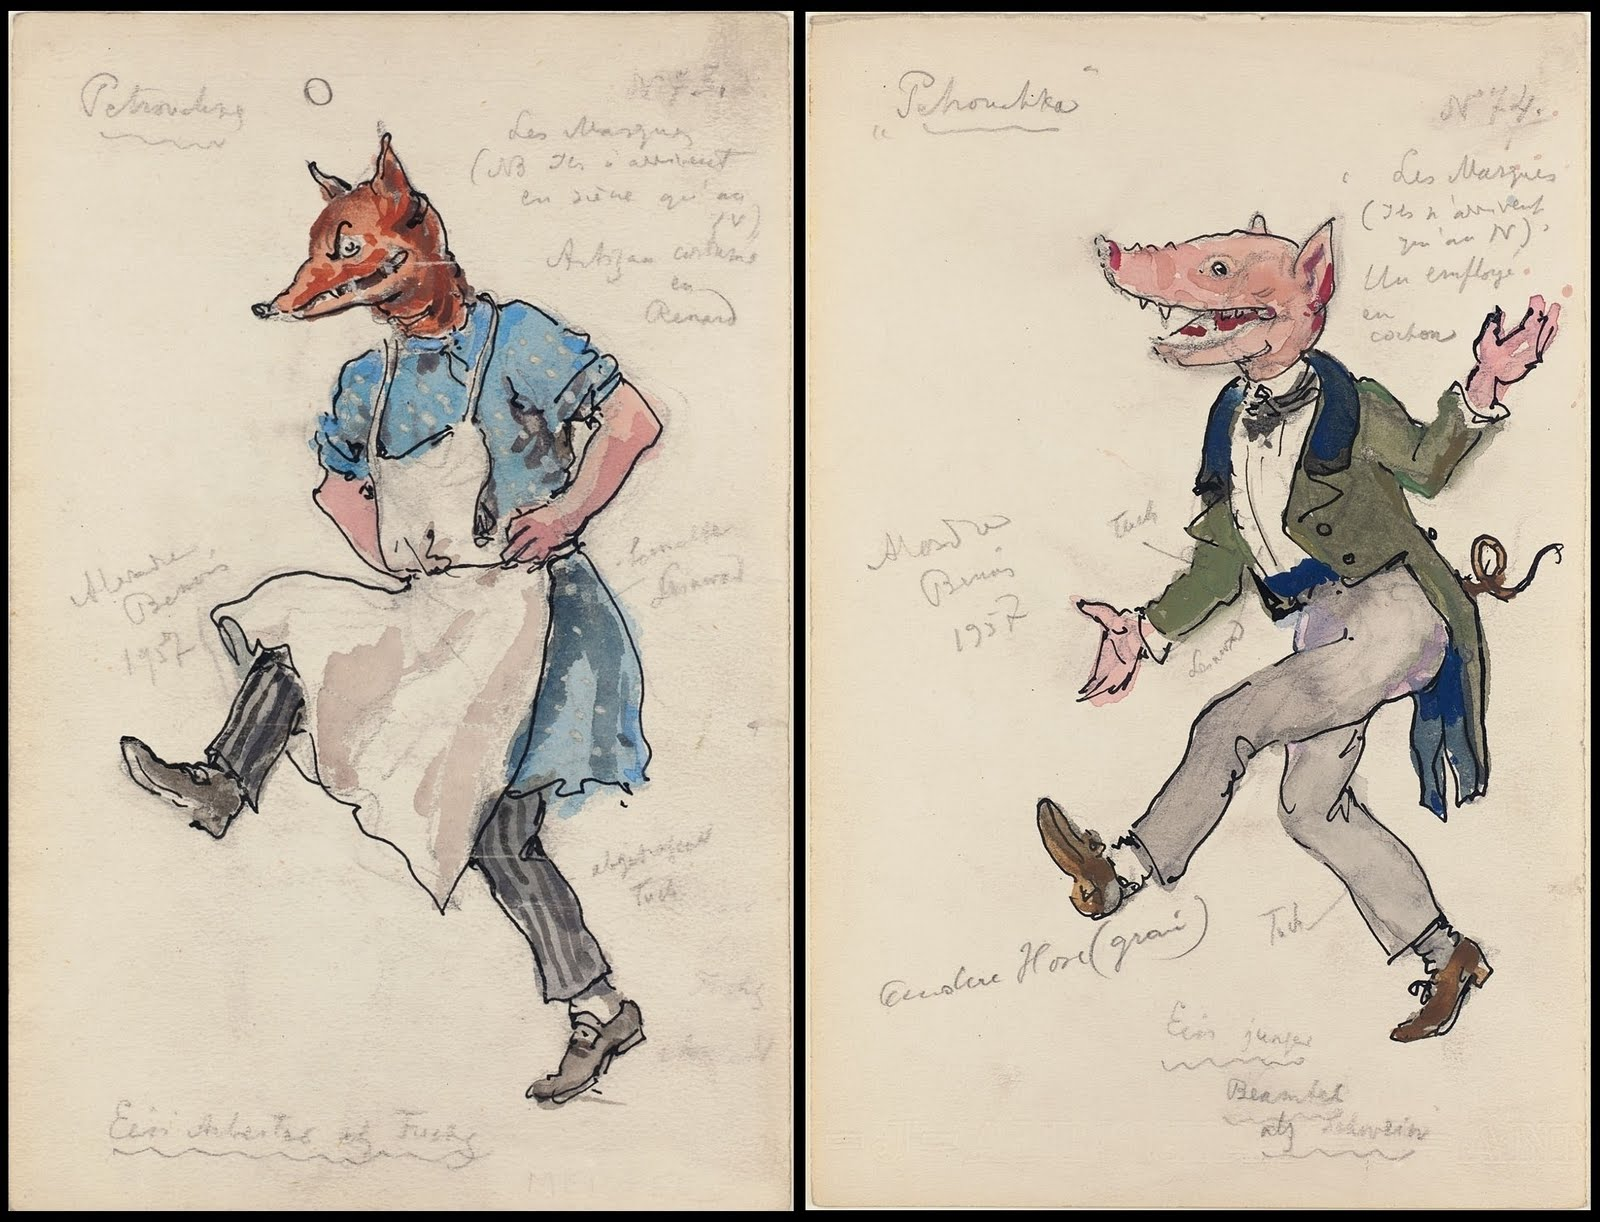 anthropomorphic pig and fox drawings for the ballet, Petrushka